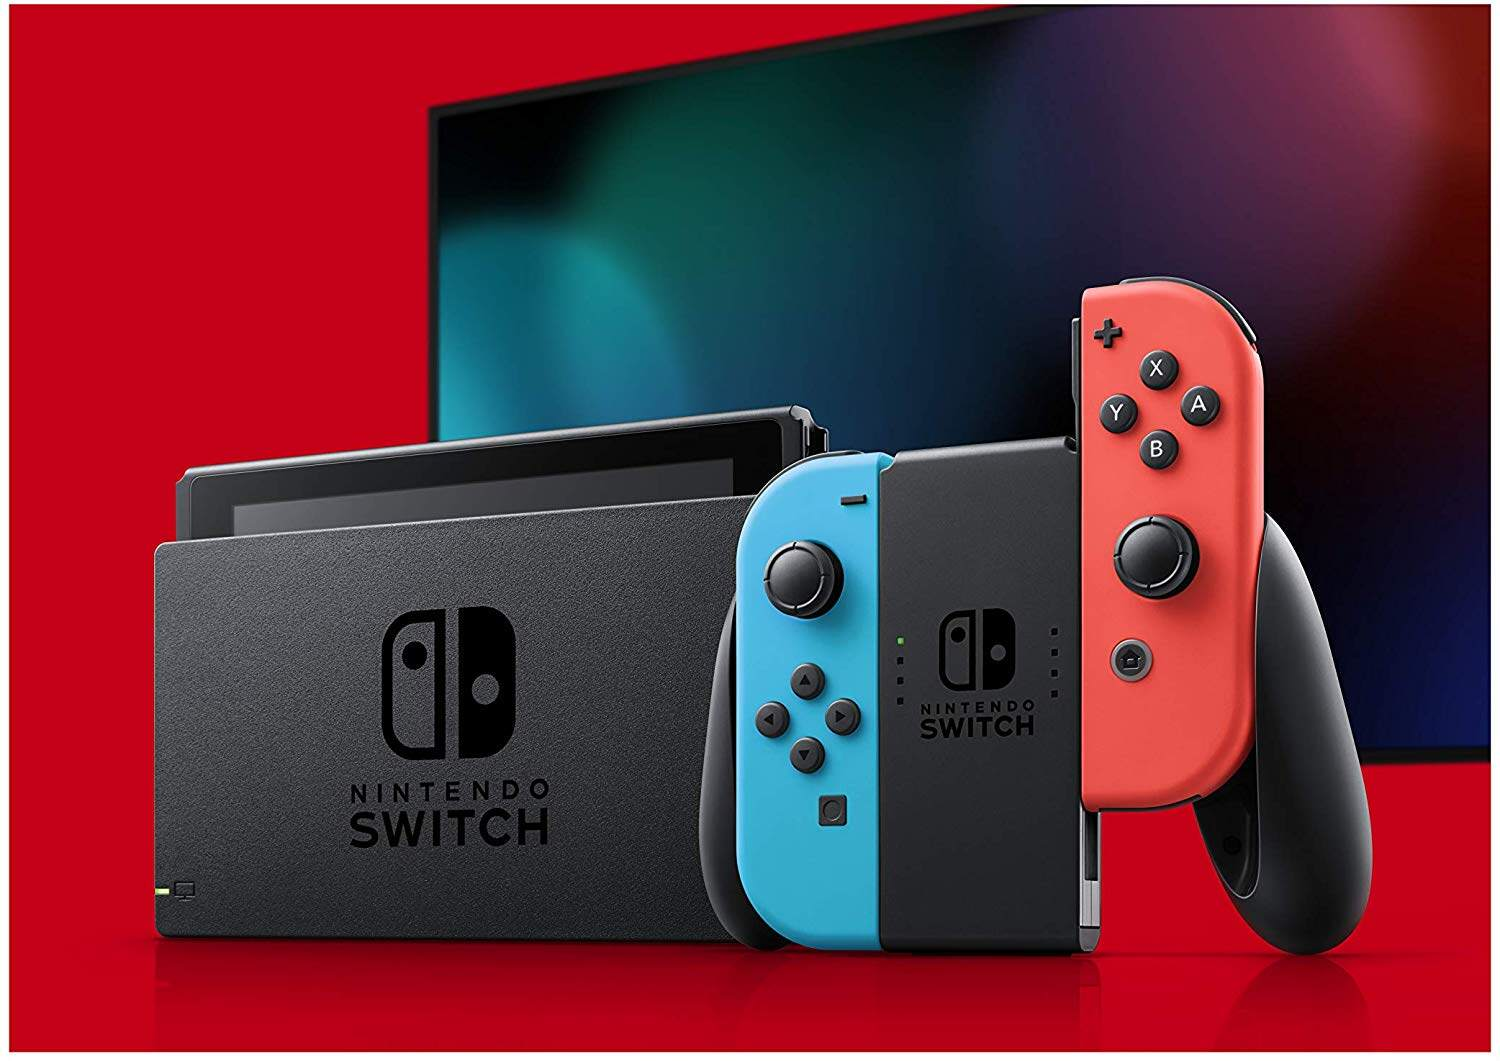 NINTENDO SWITCH CONSOLE ENHANCED BATTERY VERSION ( NEON BLUE / NEON RED )